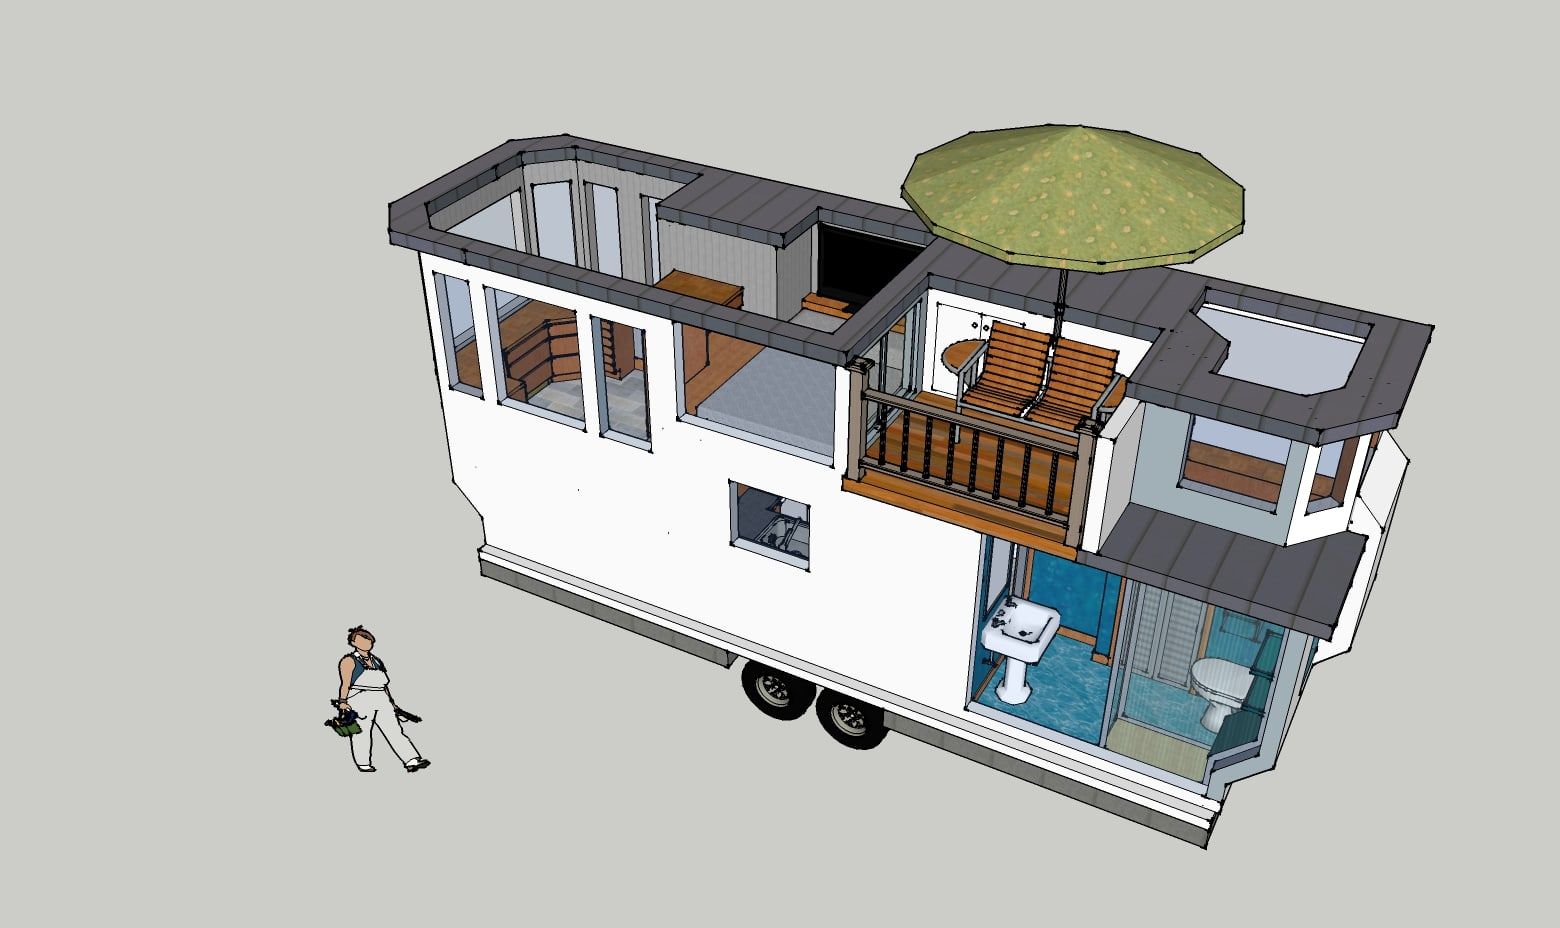 tiny house example aaa-2-min-min